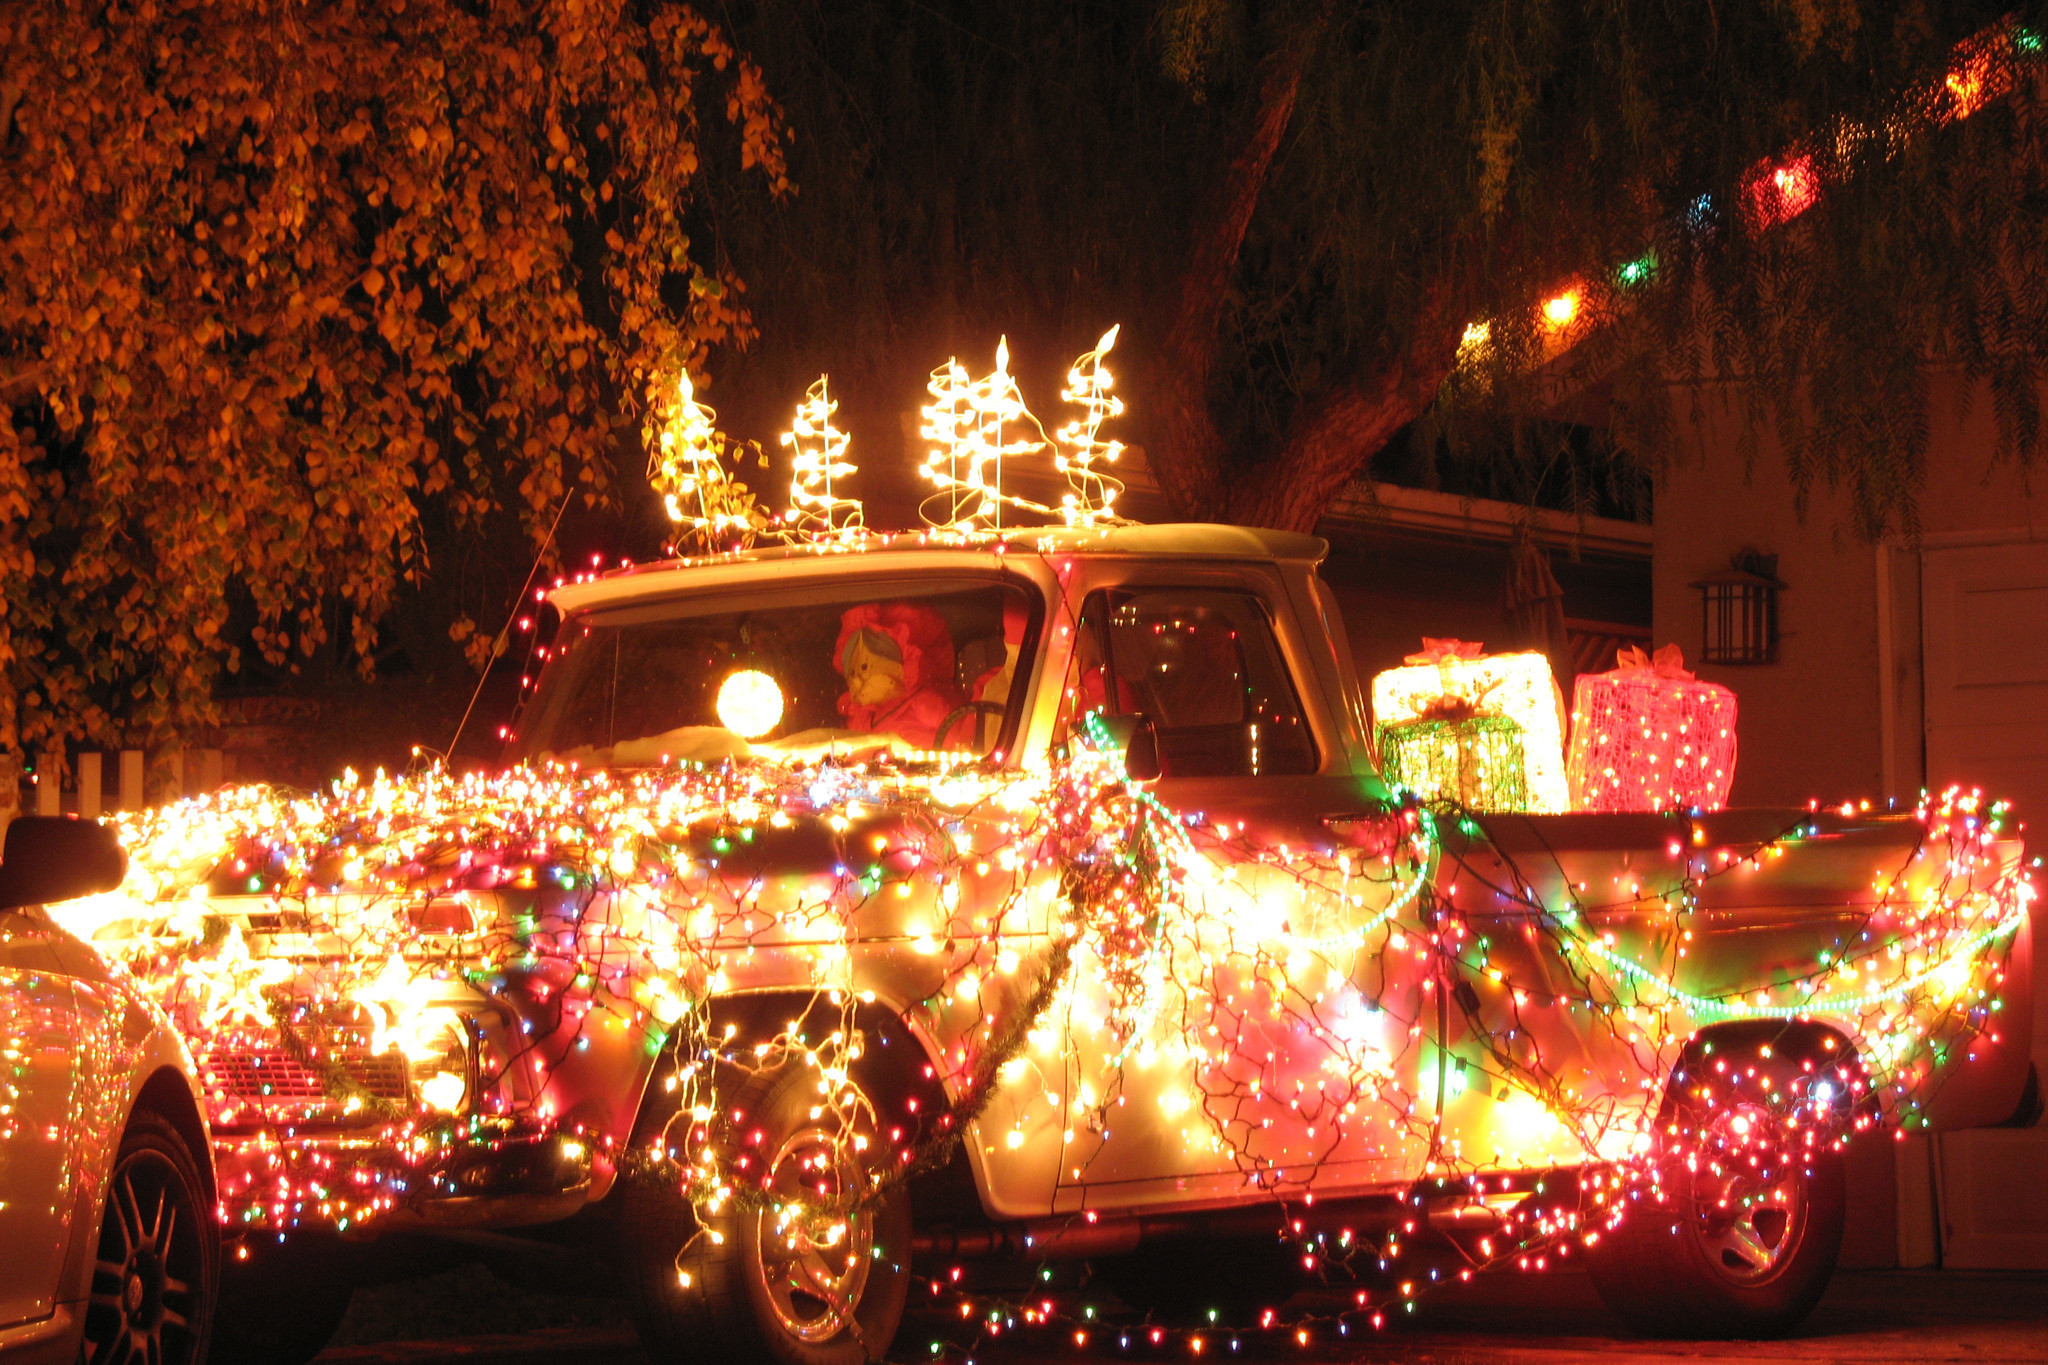 Christmas On Candy Cane Lane  15 Best Places to See Christmas Lights in Los Angeles